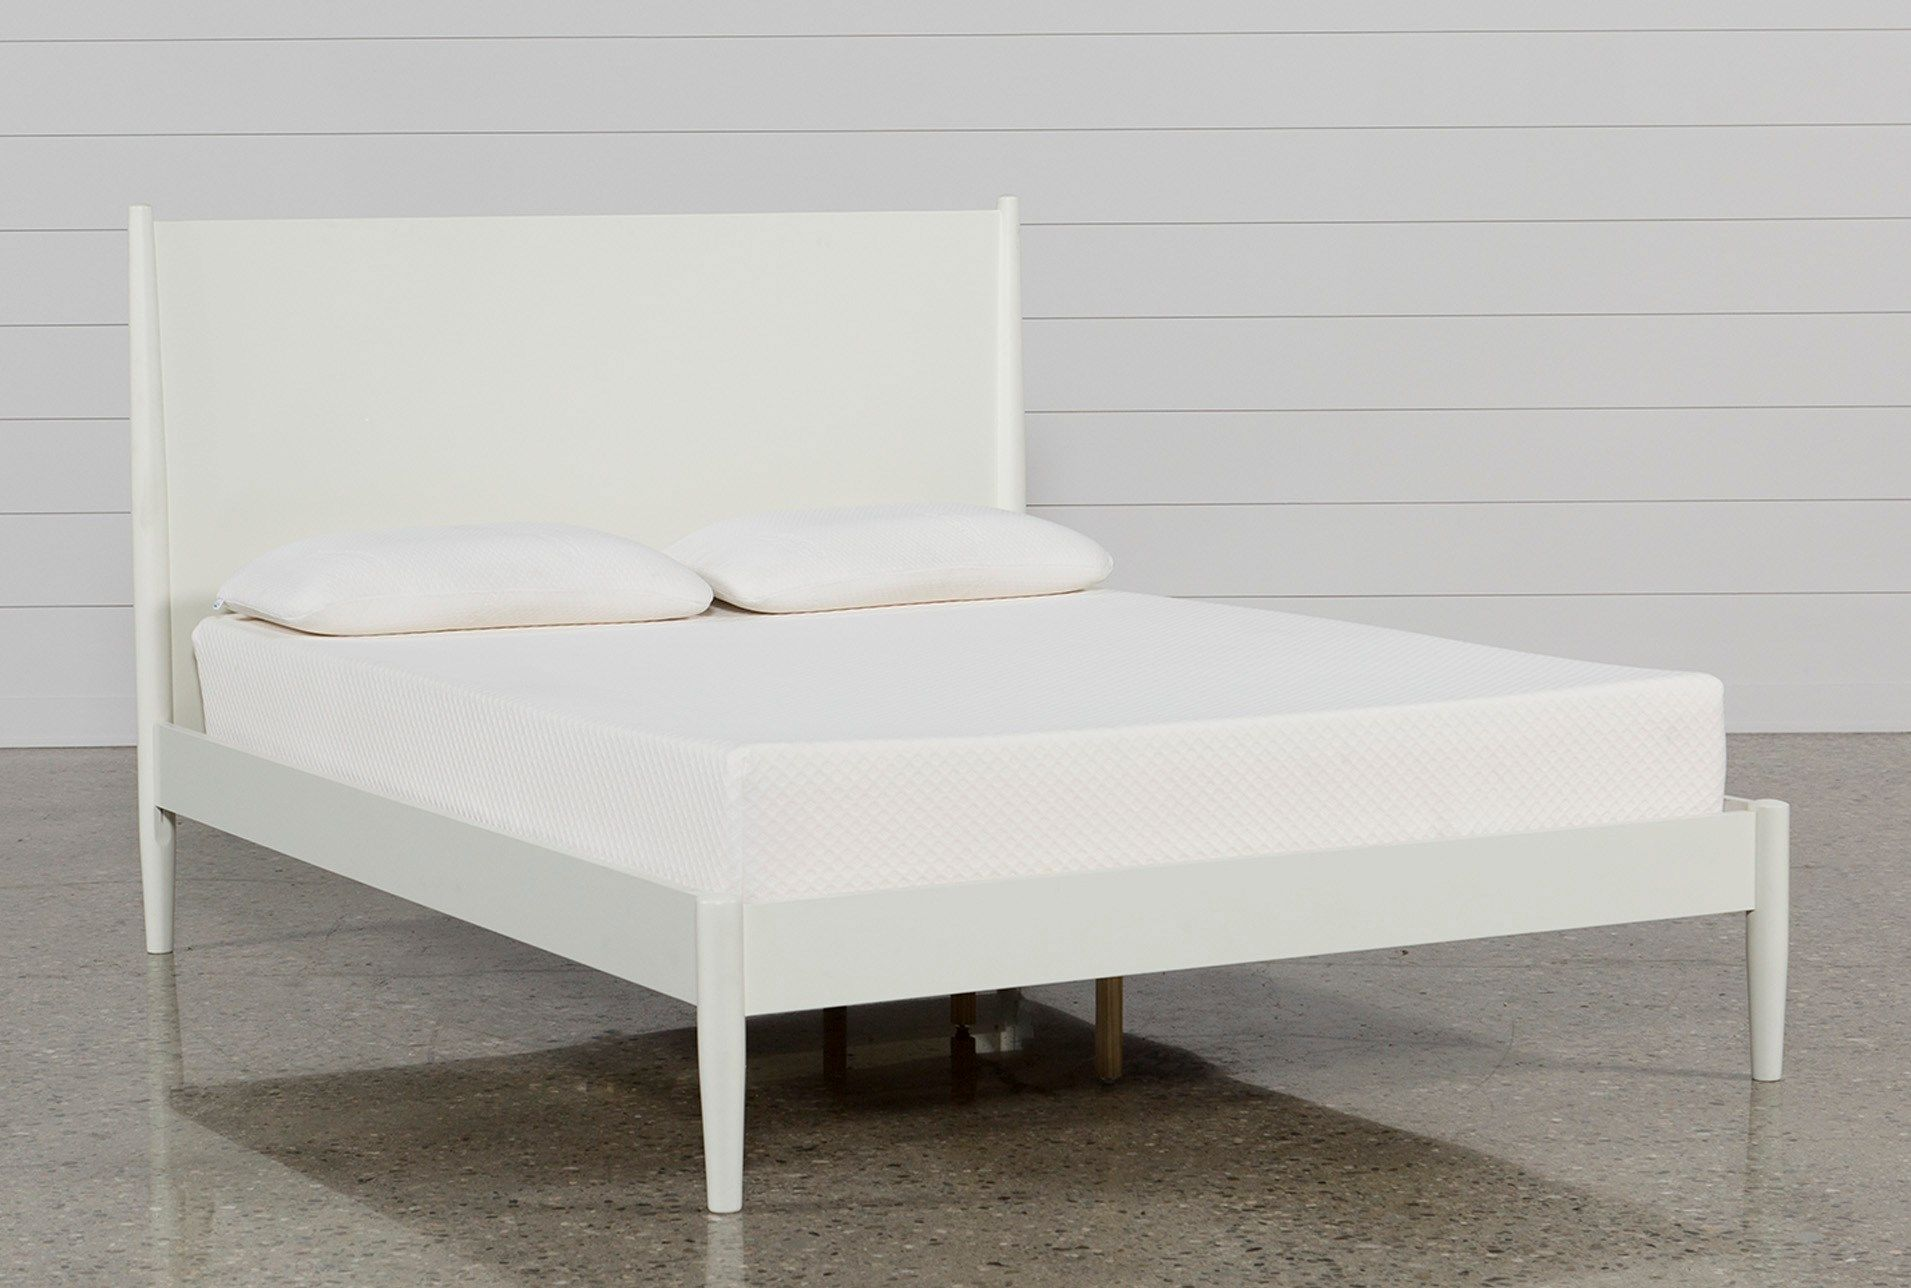 Alton White Queen Platform Bed White Platform Bed Full Platform